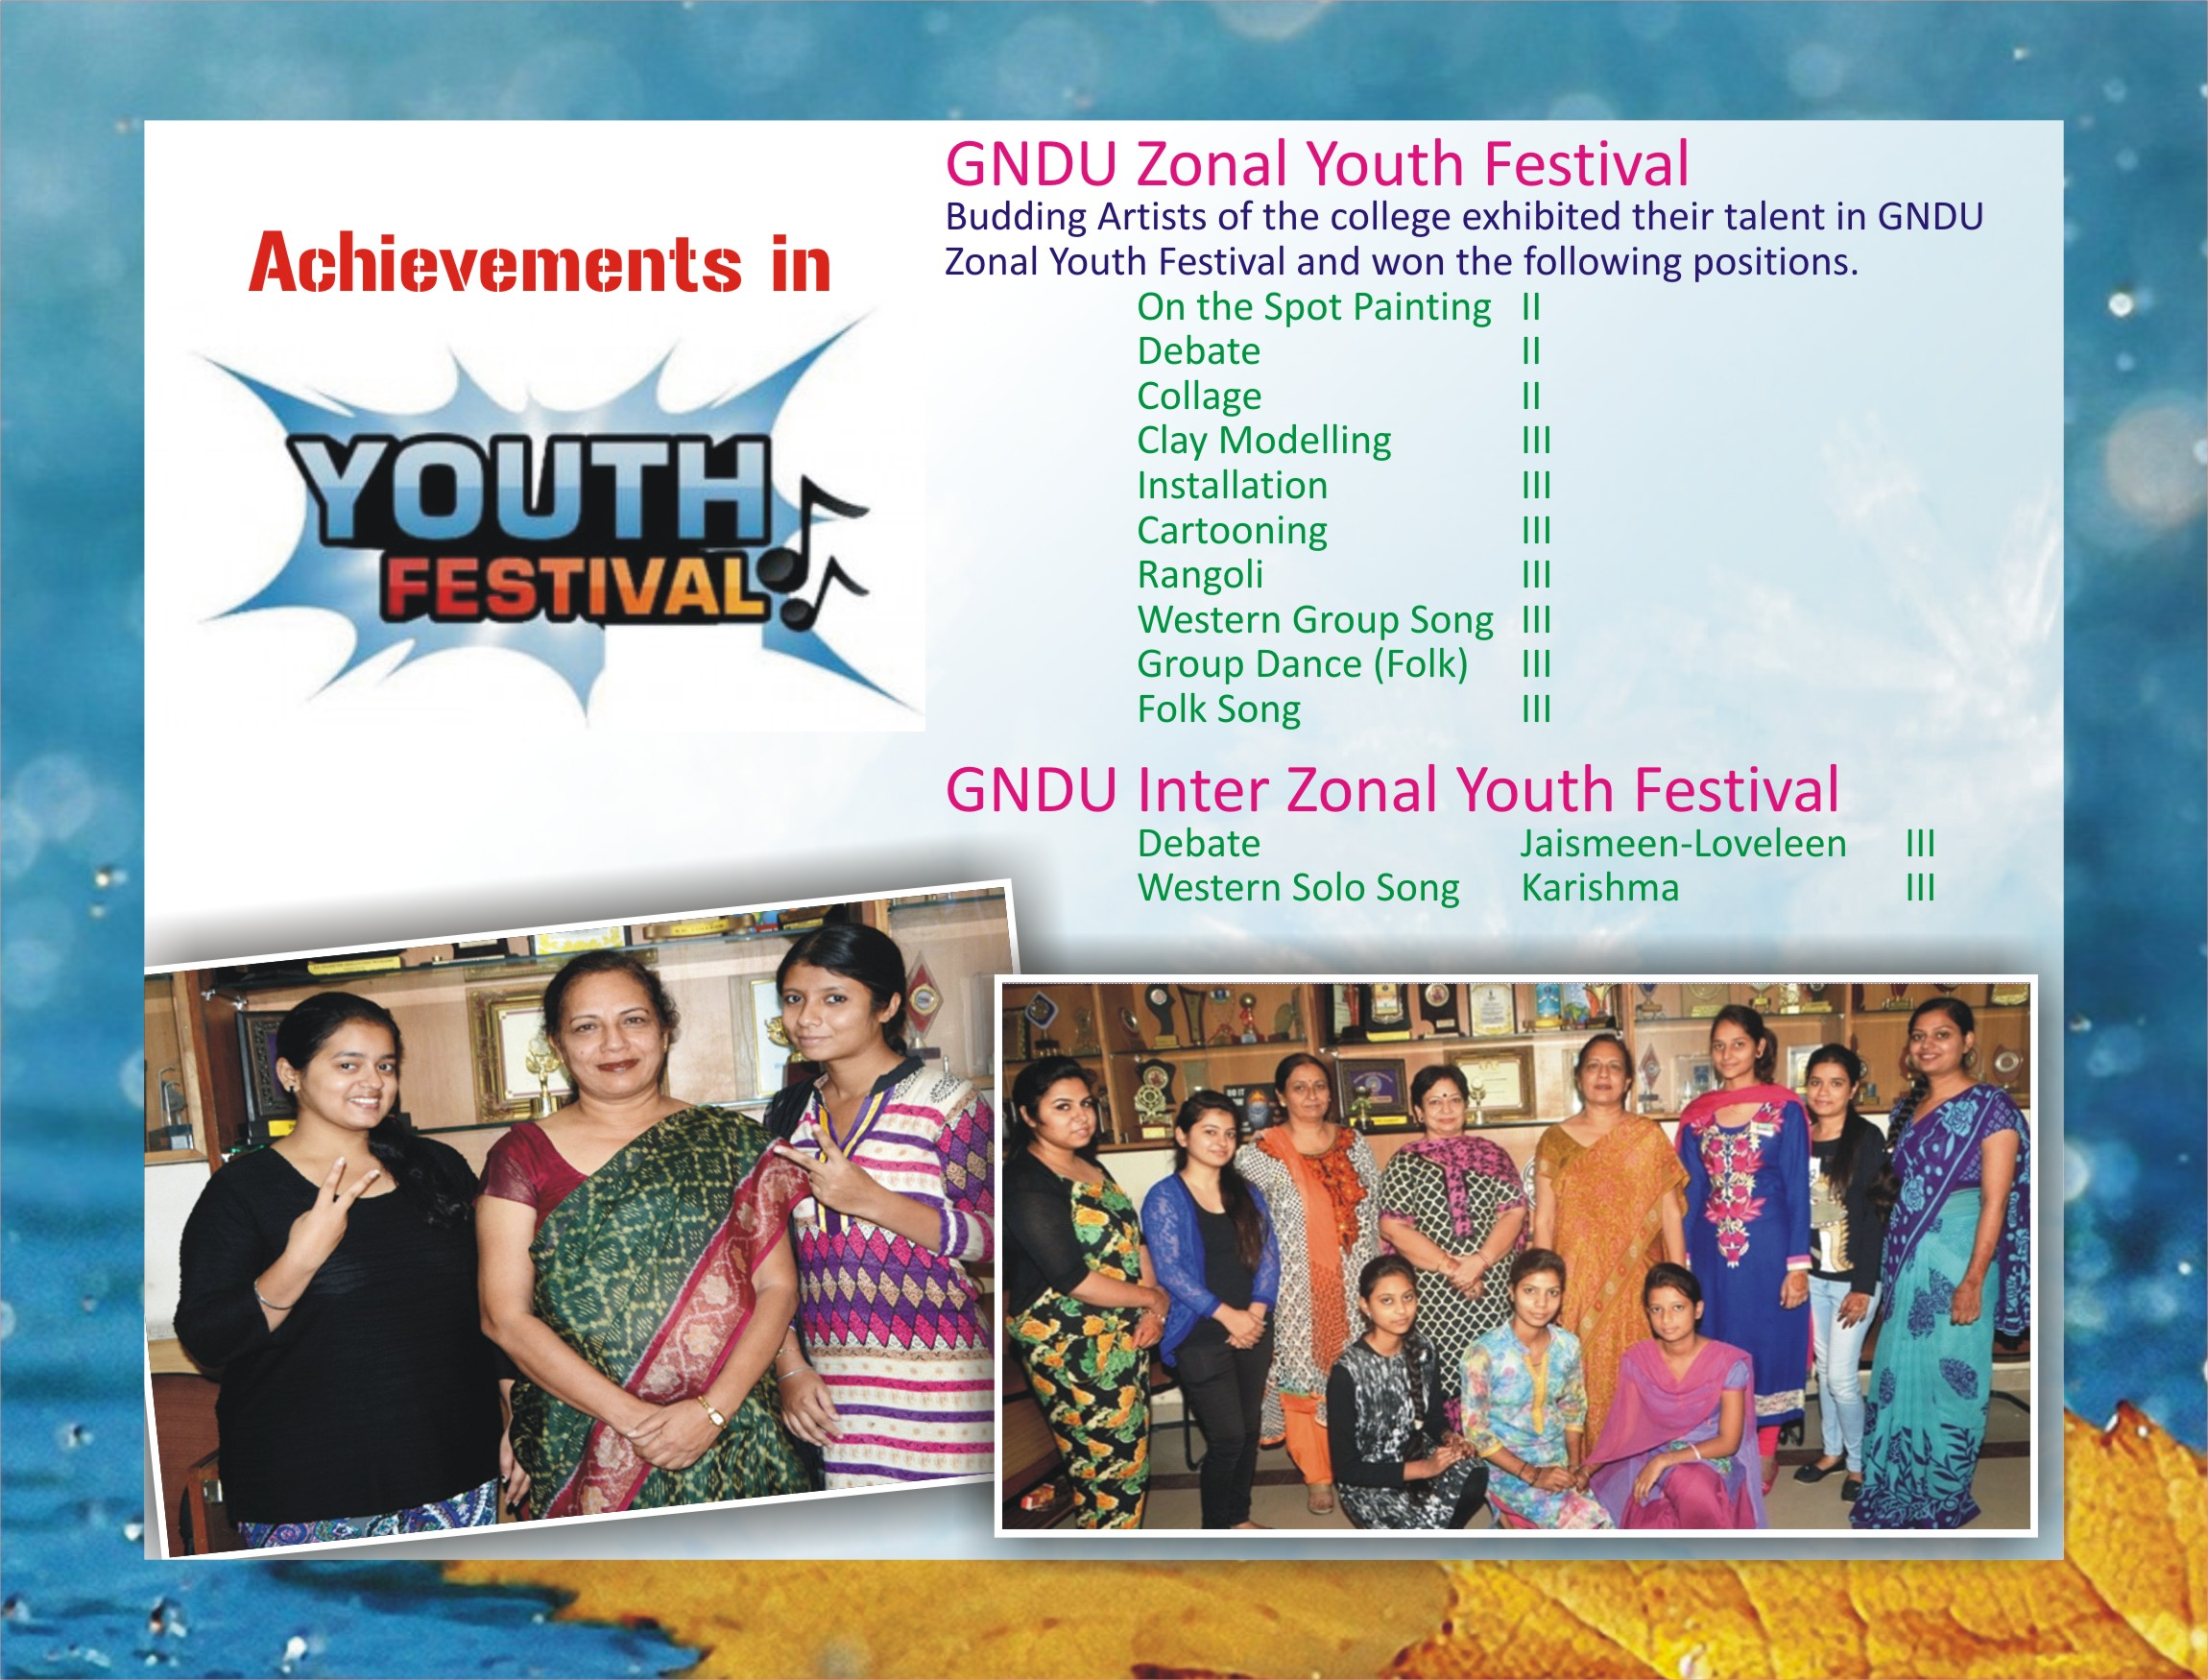 Achievements in Youth Festival